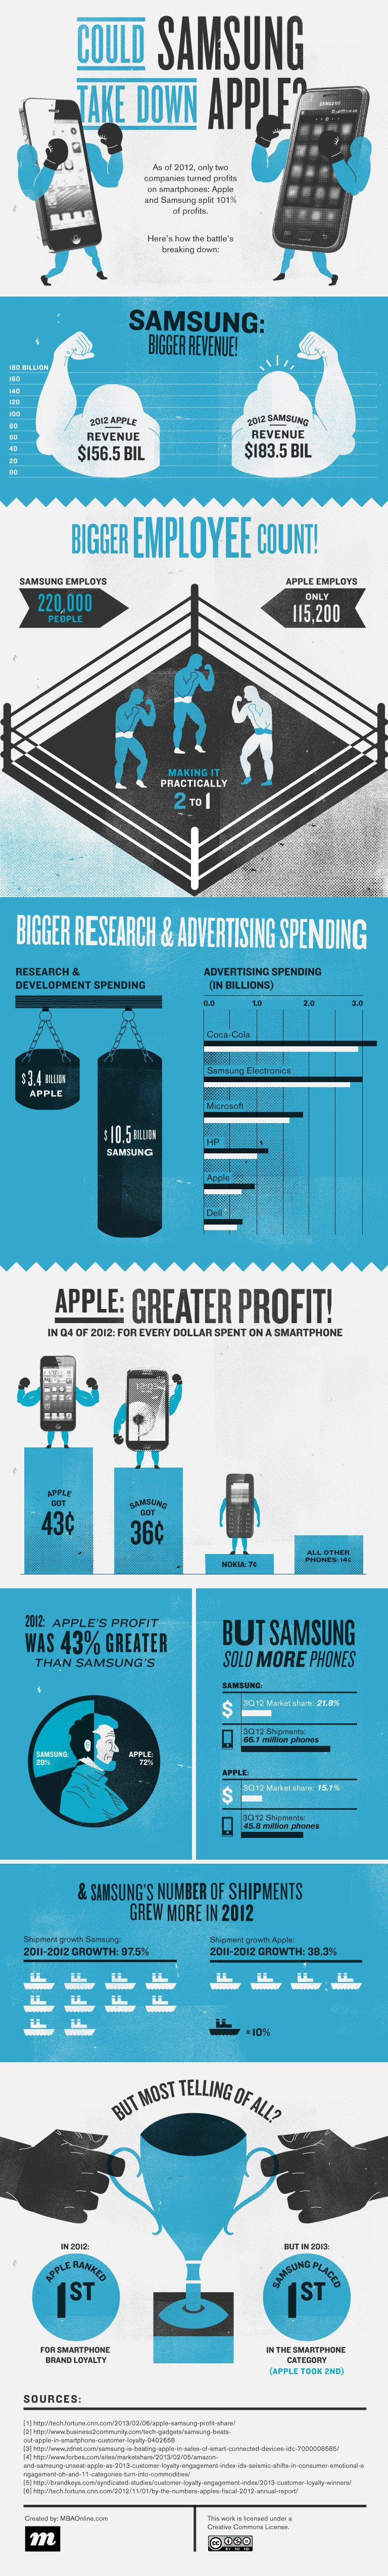 can samsung take down apple1 Could Samsung Overtake Apple? [Infographic]